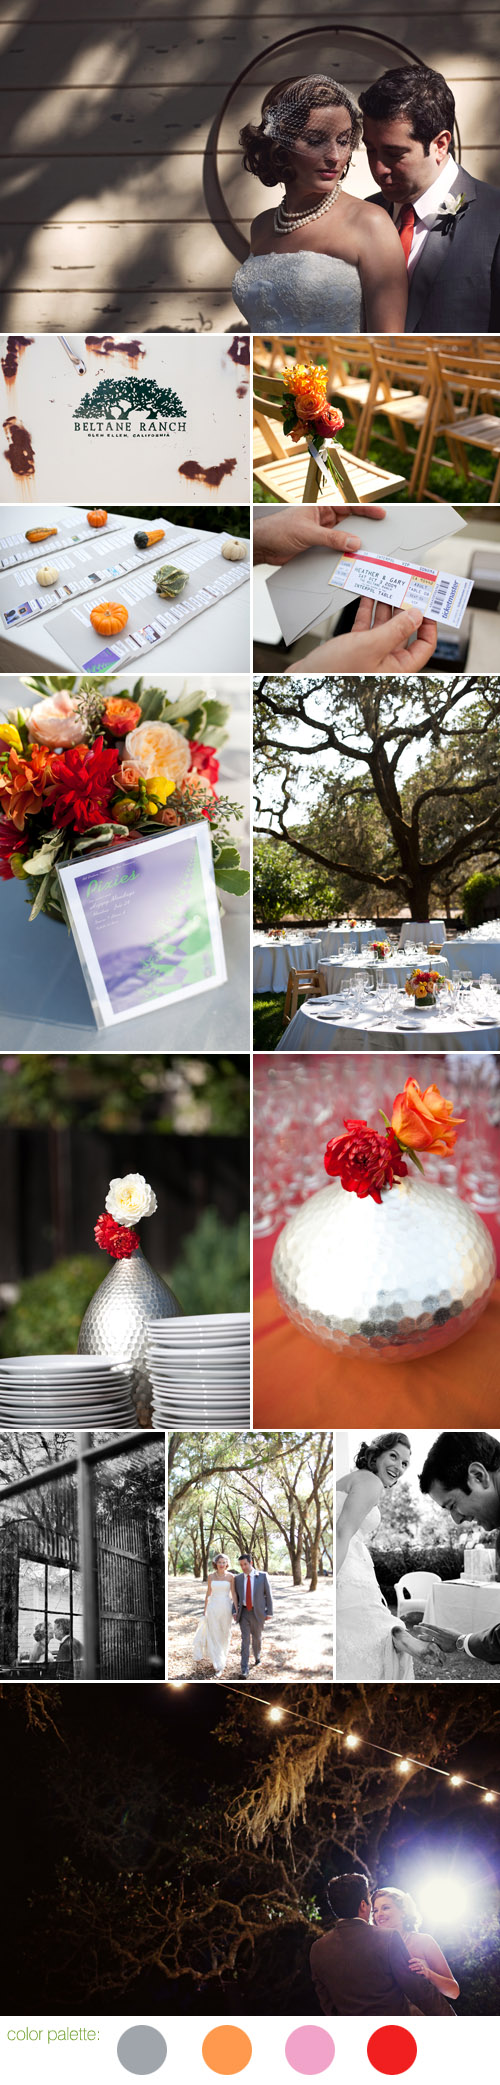 fall california wedding style inspired by music and concerts, photos by Jerry Yoon Photography